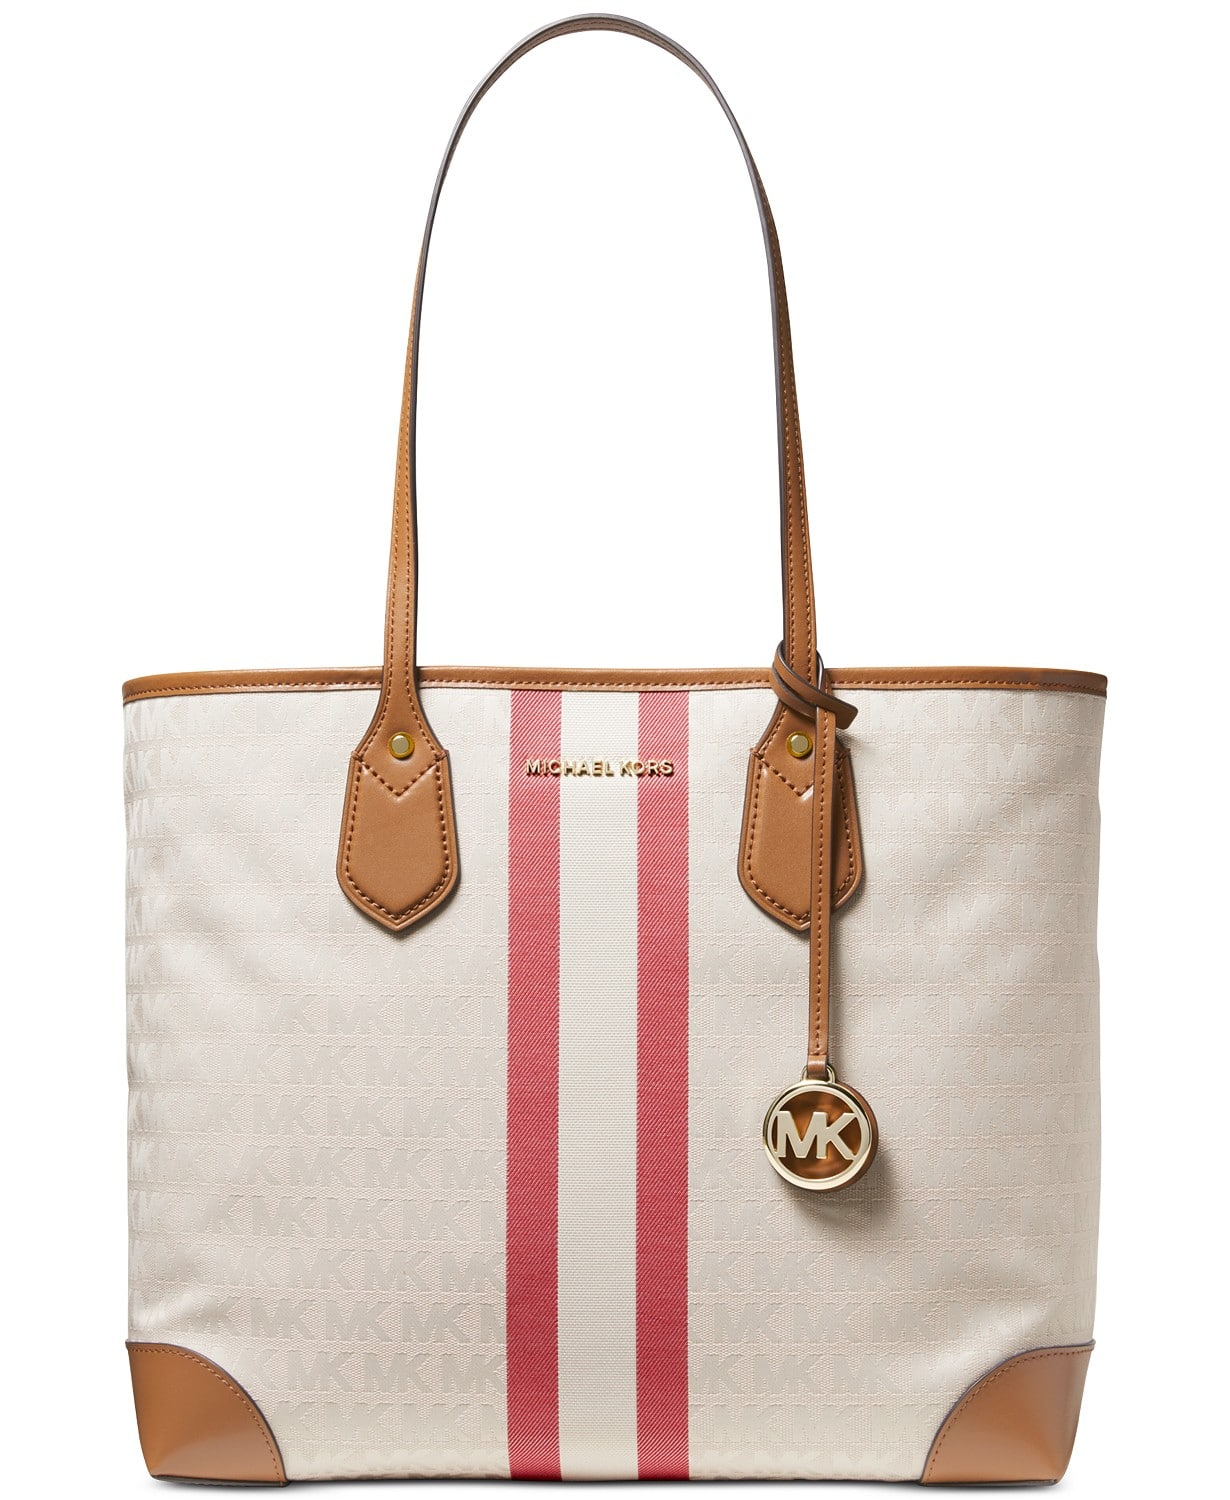 Michael Kors up to 70% Off:  Voyager East West Crossgrain Leather Tote + $10 Macys eGift Card $68.40, Eva Stripe Tote + $10 eGift Card $68.40, More + free shipping